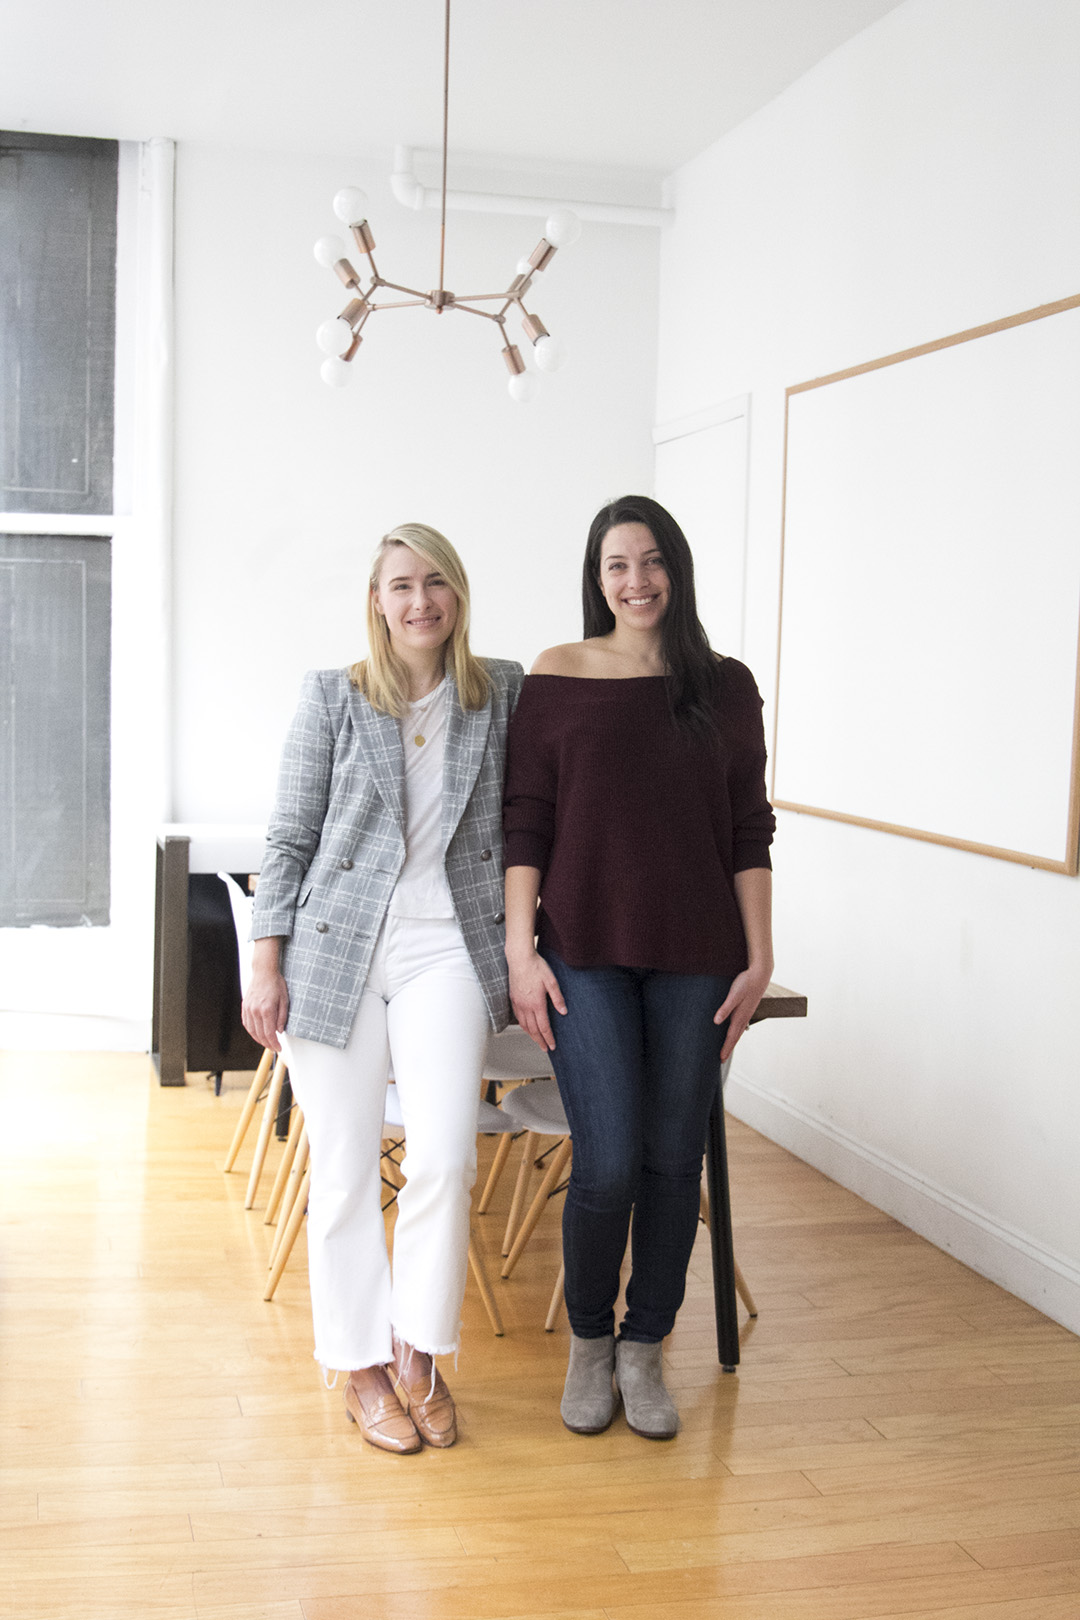 Bloomerent founders Danit Zanir and Julia Capalino on how an why you should find a business partner